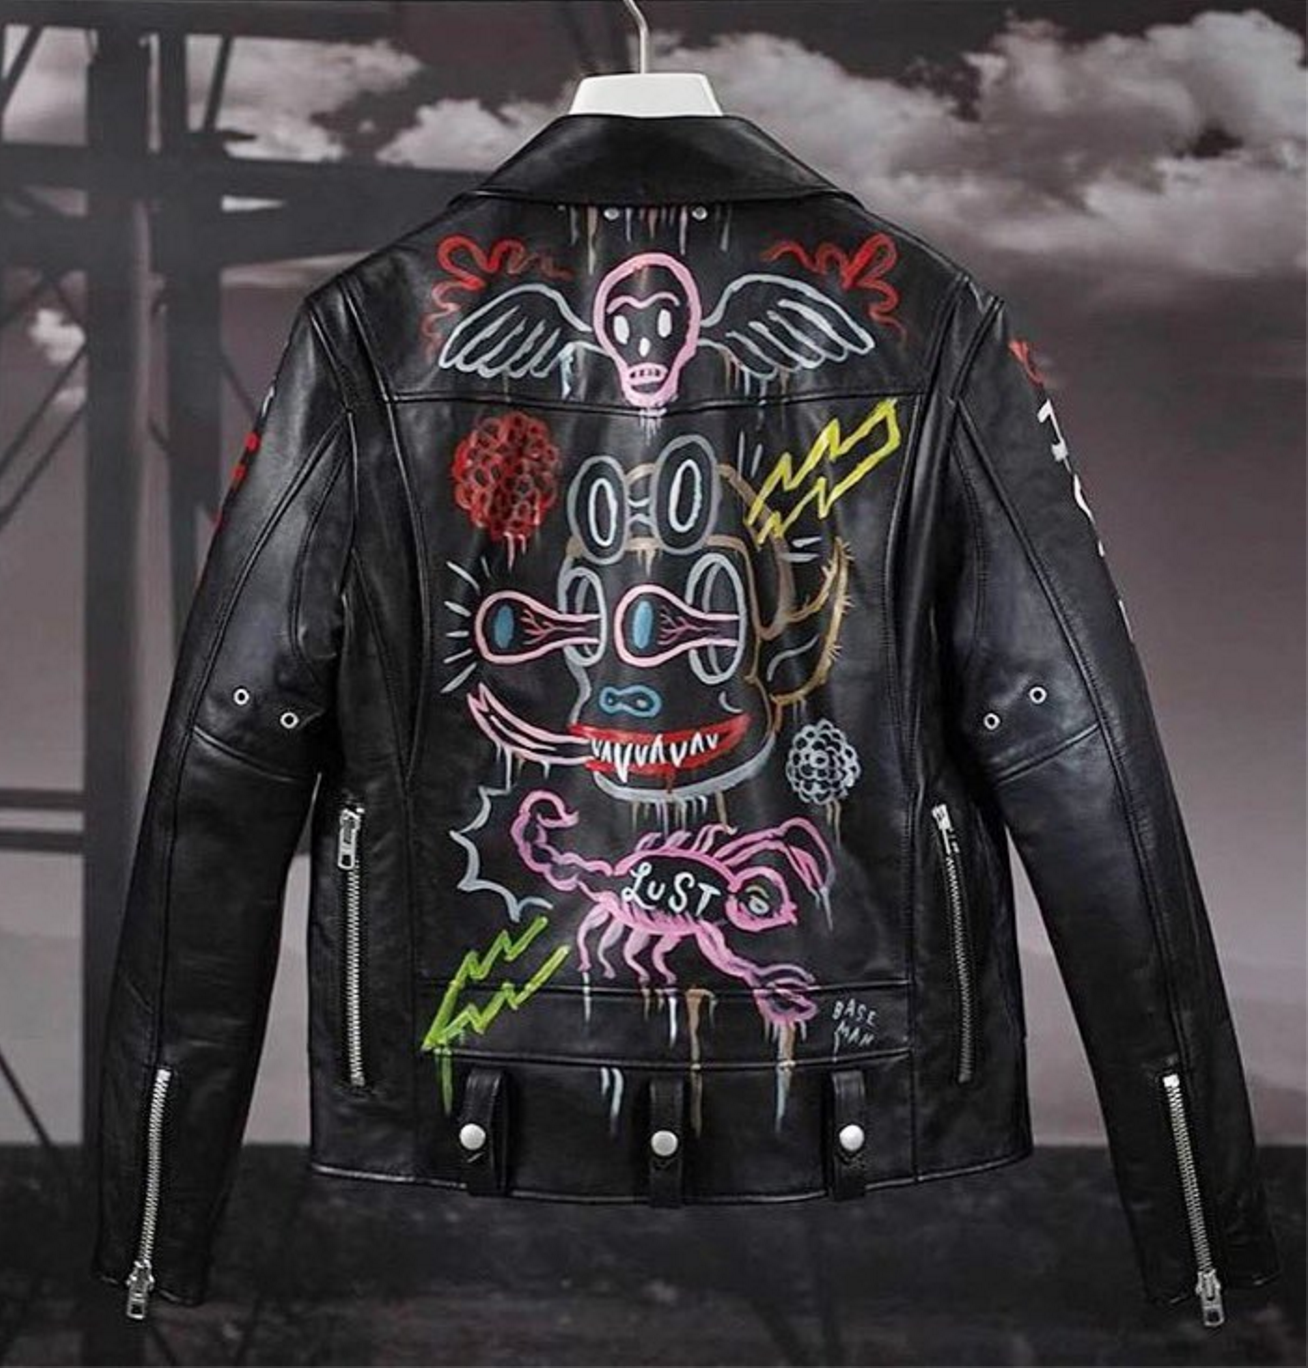 Gary Baseman's incredible hand painted leather jacket for